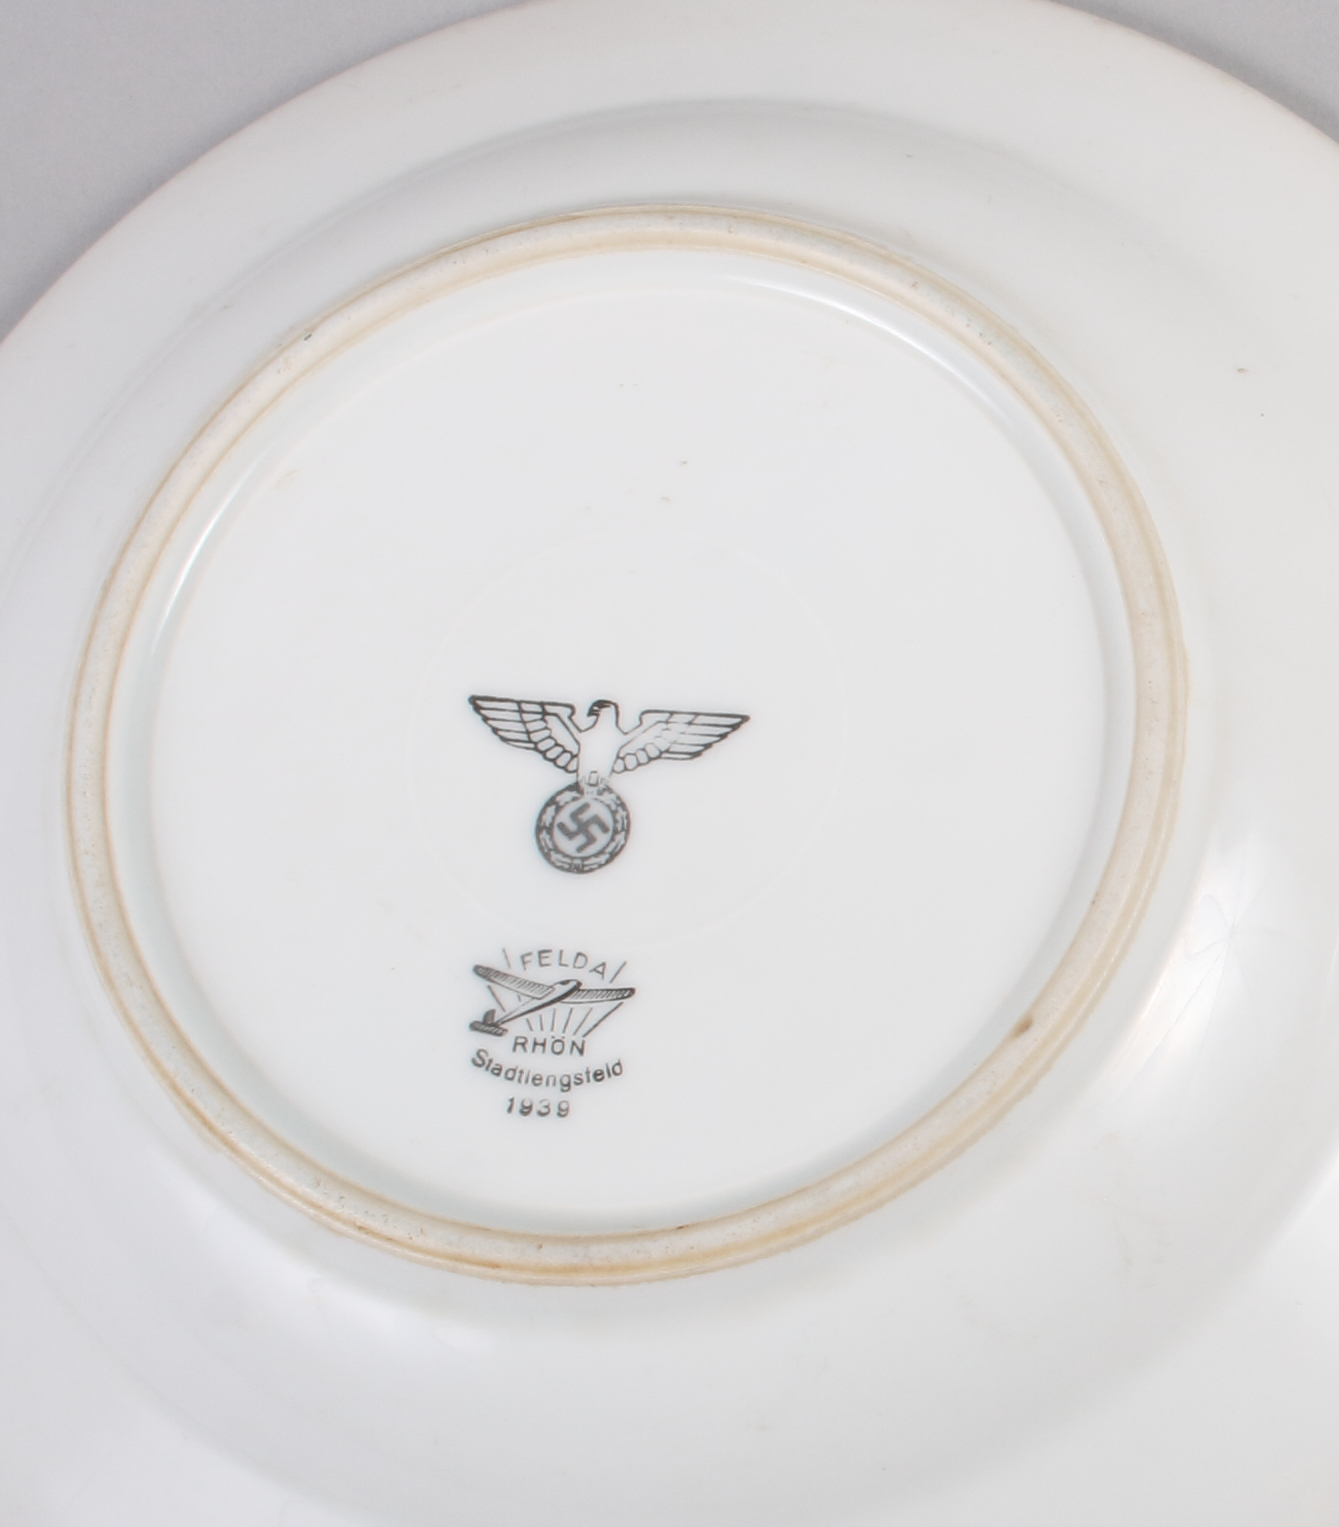 Lot 3 - A pair of Felda Rhon bowls, dated 1939, underside bearing the emblem of the Third Reich